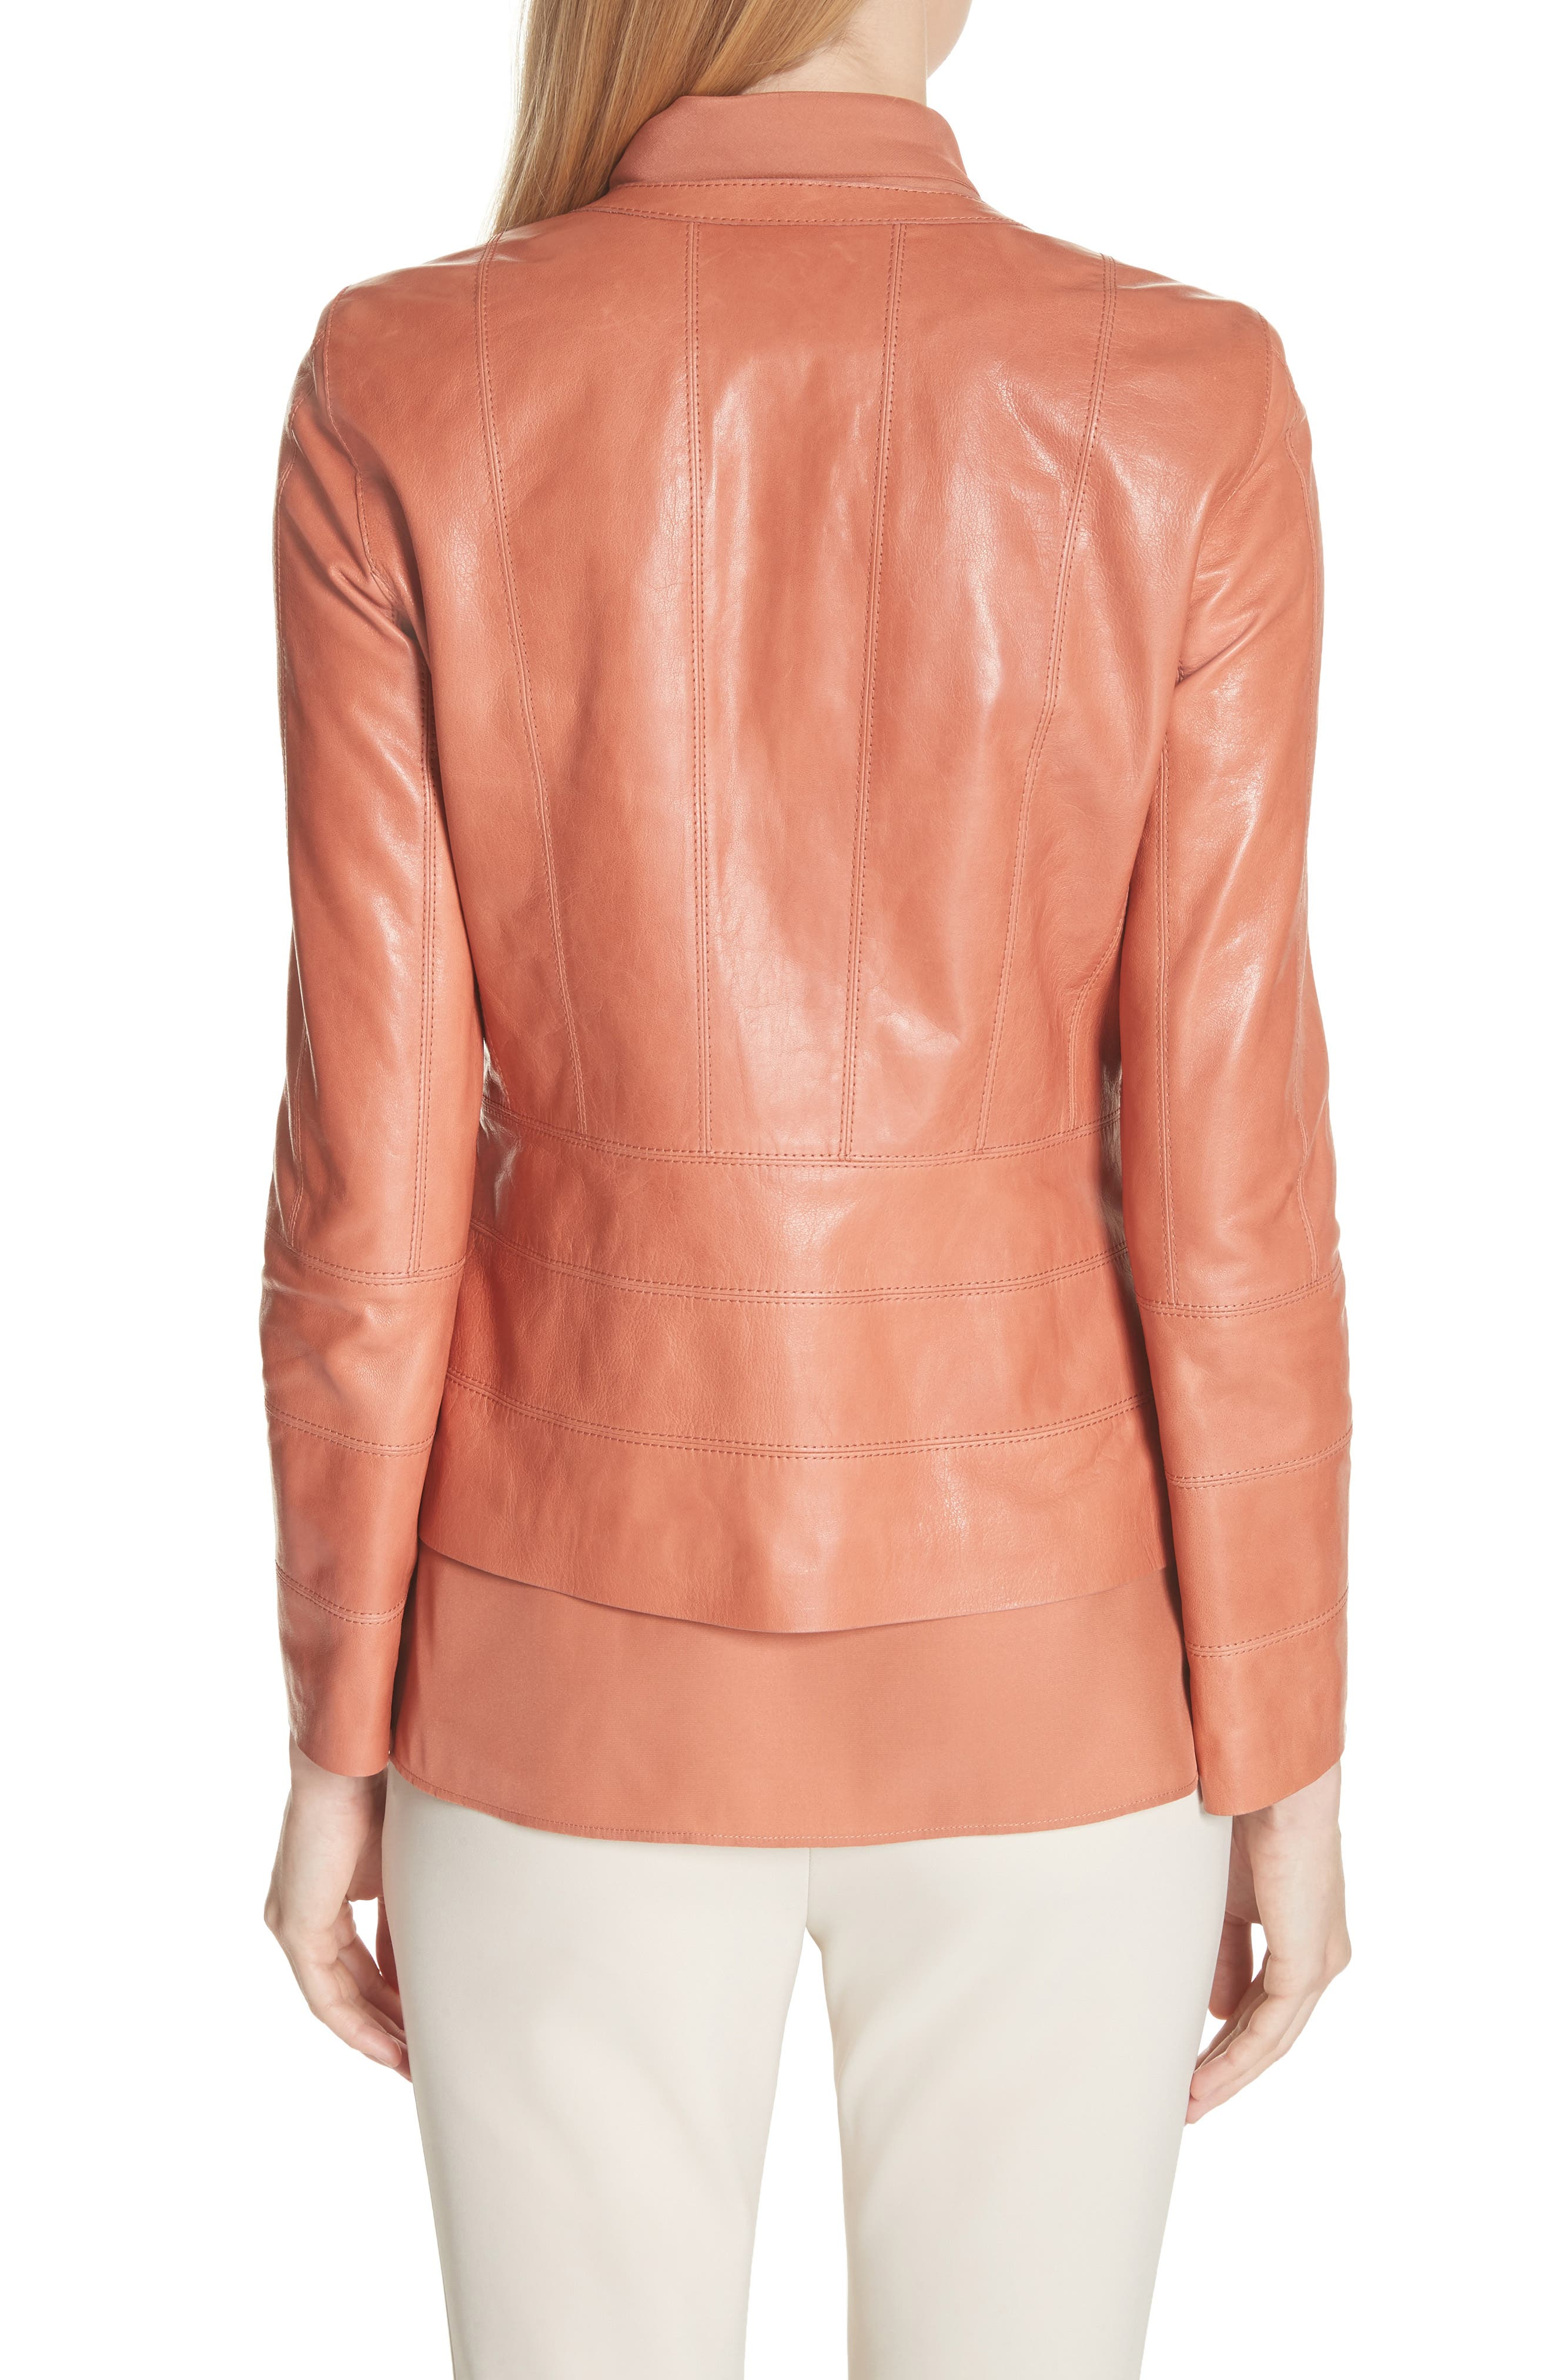 Courtney Glazed Lambskin Leather Jacket,                             Alternate thumbnail 2, color,                             802